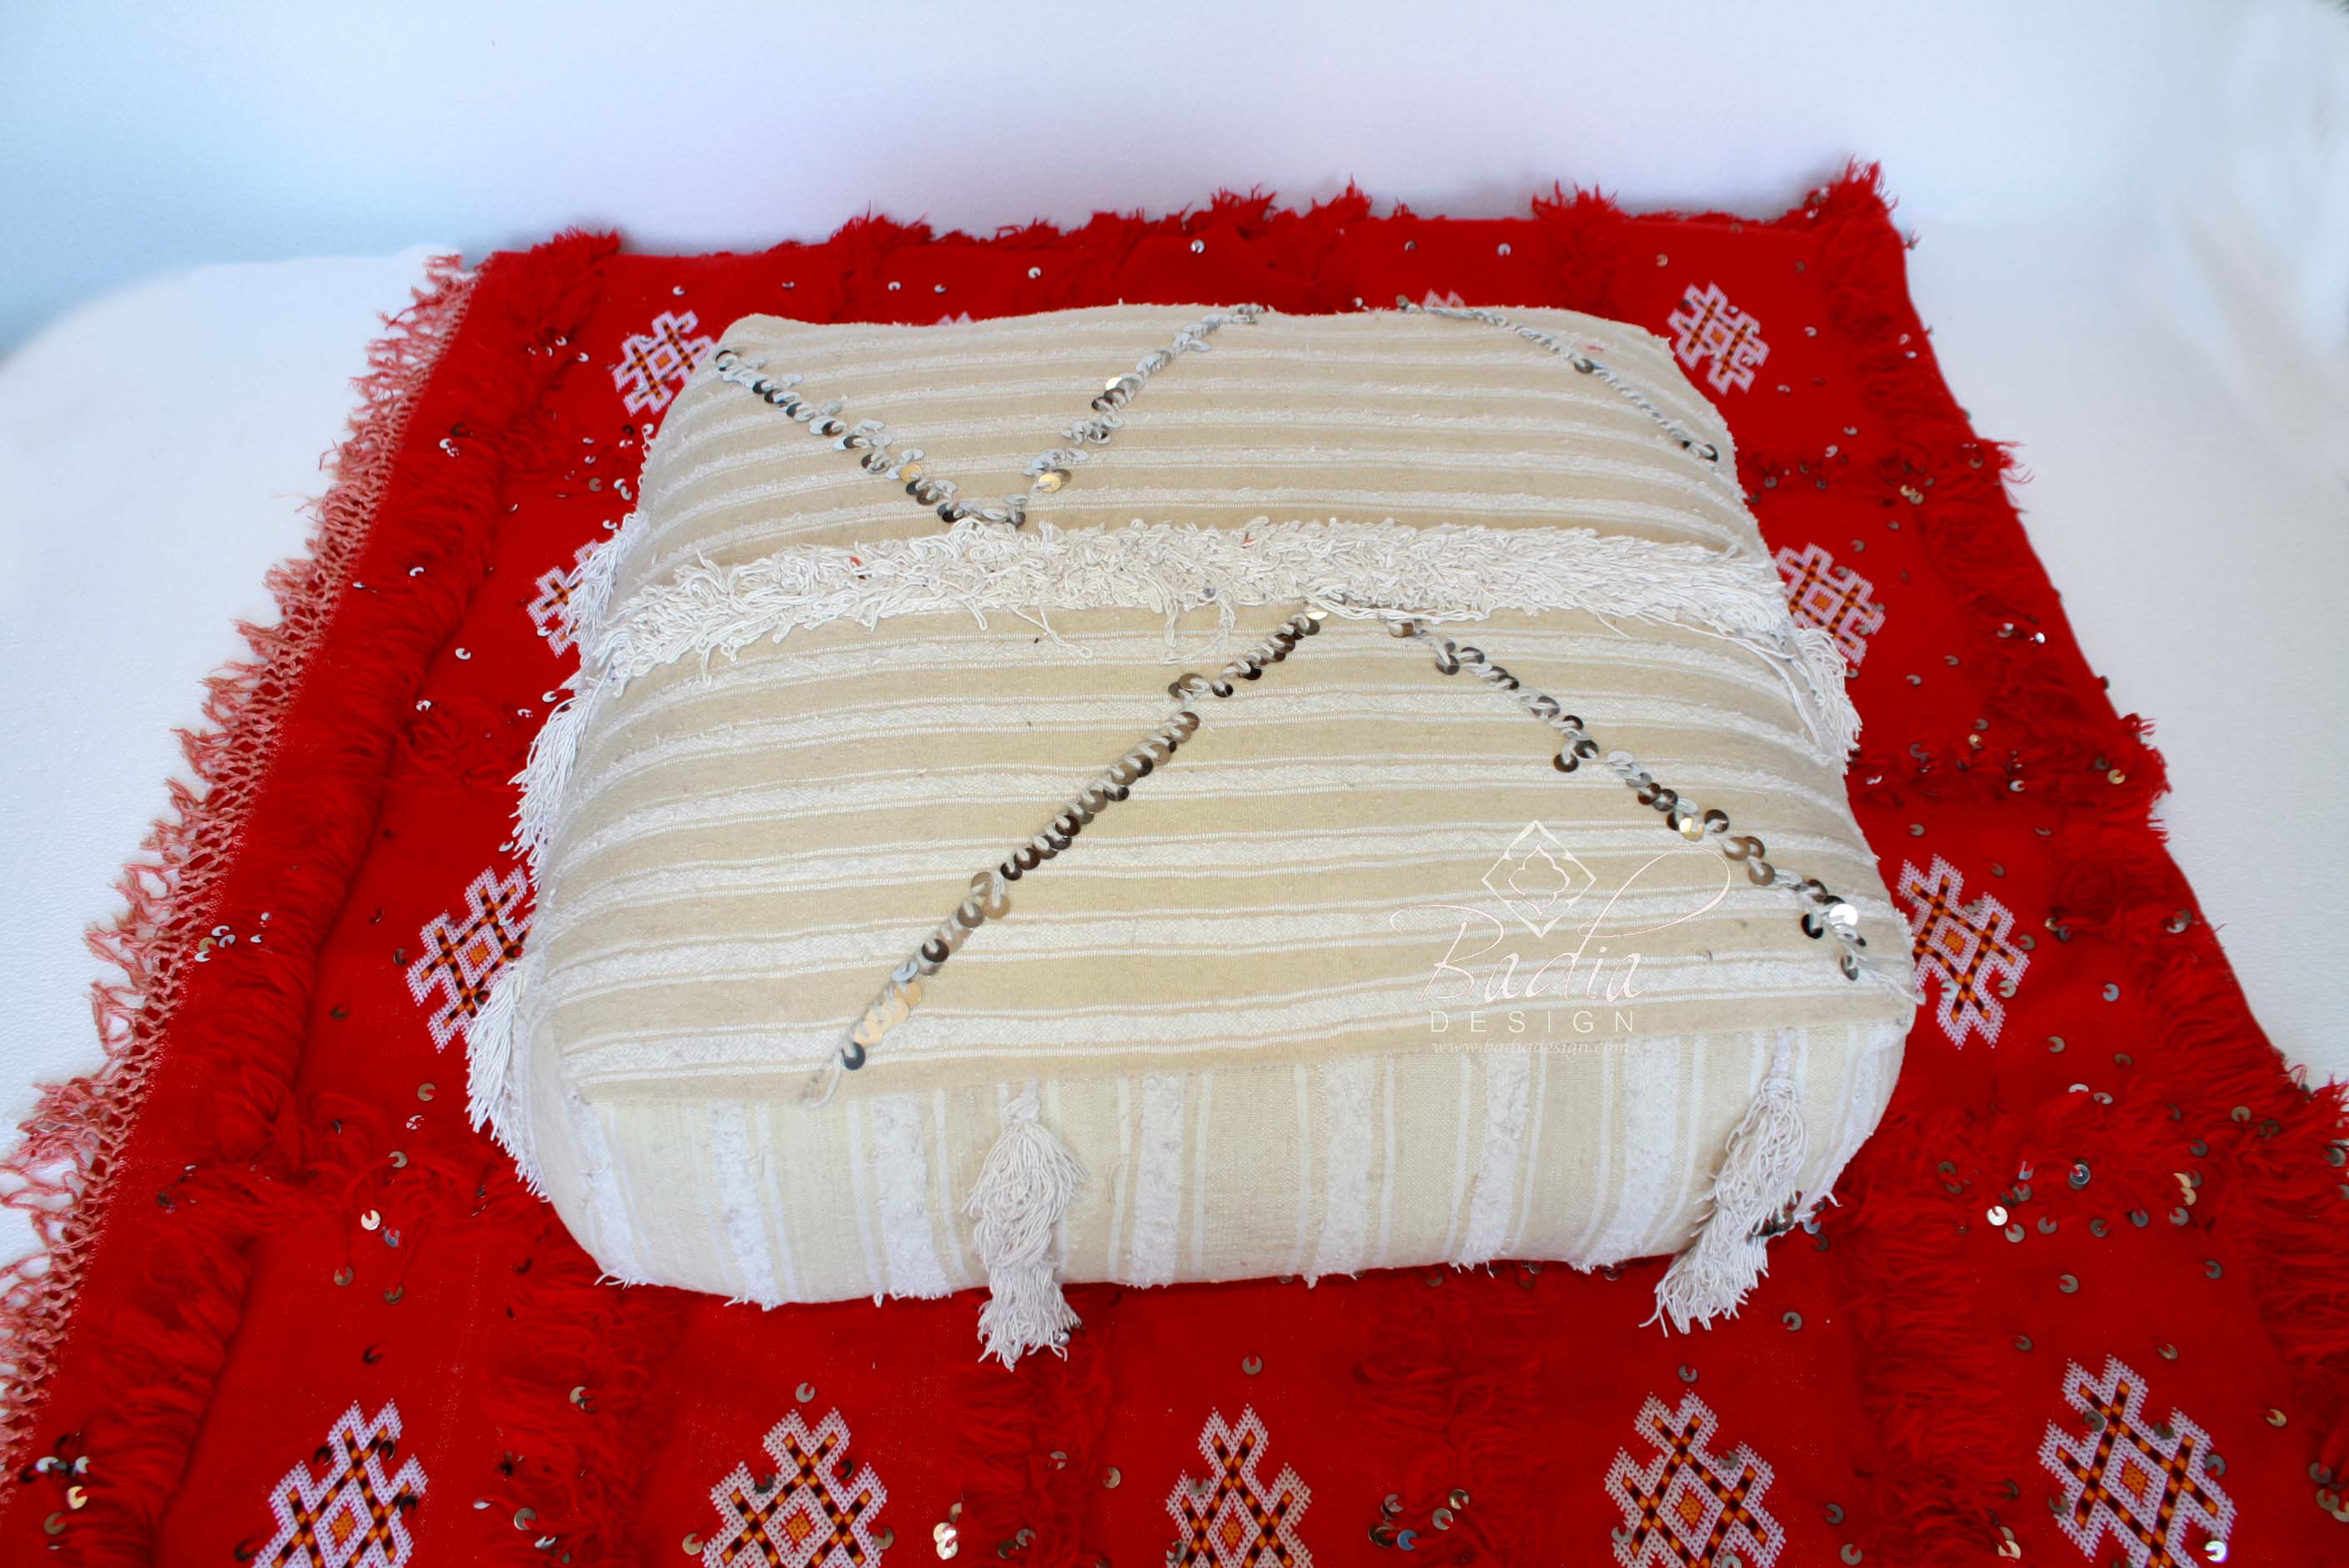 moroccan-wedding-floor-cushion-fp712-4.jpg